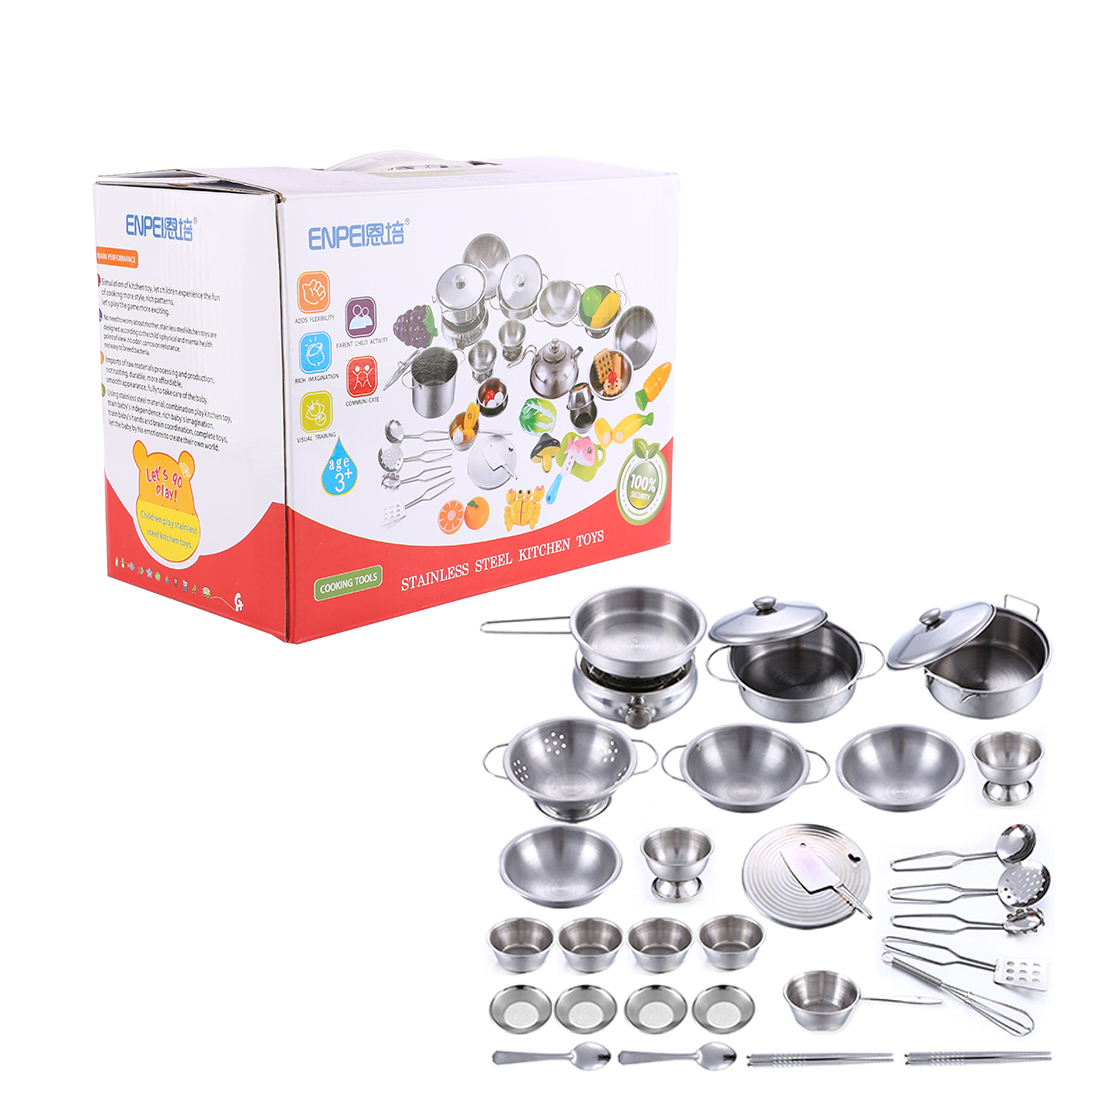 16/25/32Pcs Stainless Steel Children <font><b>Kitchen</b></font> <font><b>Toys</b></font> Miniature Cooking <font><b>Set</b></font> Simulation Tableware Pretend Cook <font><b>Toy</b></font> for Kids Boy Gift image